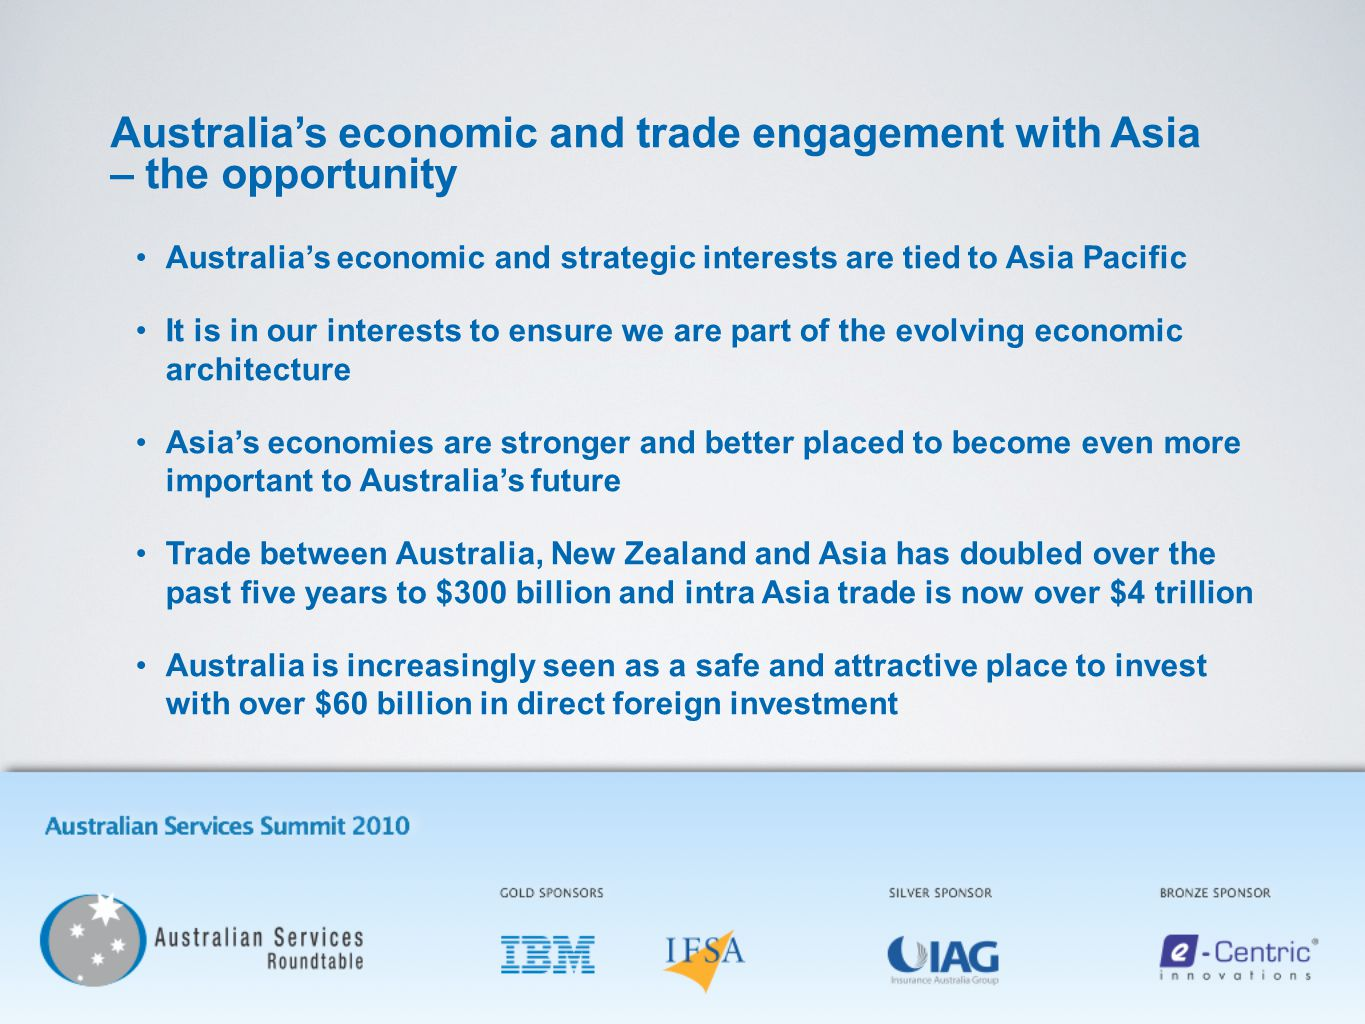 Australia's economic and trade engagement with Asia – the opportunity Australia's economic and strategic interests are tied to Asia Pacific It is in our interests to ensure we are part of the evolving economic architecture Asia's economies are stronger and better placed to become even more important to Australia's future Trade between Australia, New Zealand and Asia has doubled over the past five years to $300 billion and intra Asia trade is now over $4 trillion Australia is increasingly seen as a safe and attractive place to invest with over $60 billion in direct foreign investment